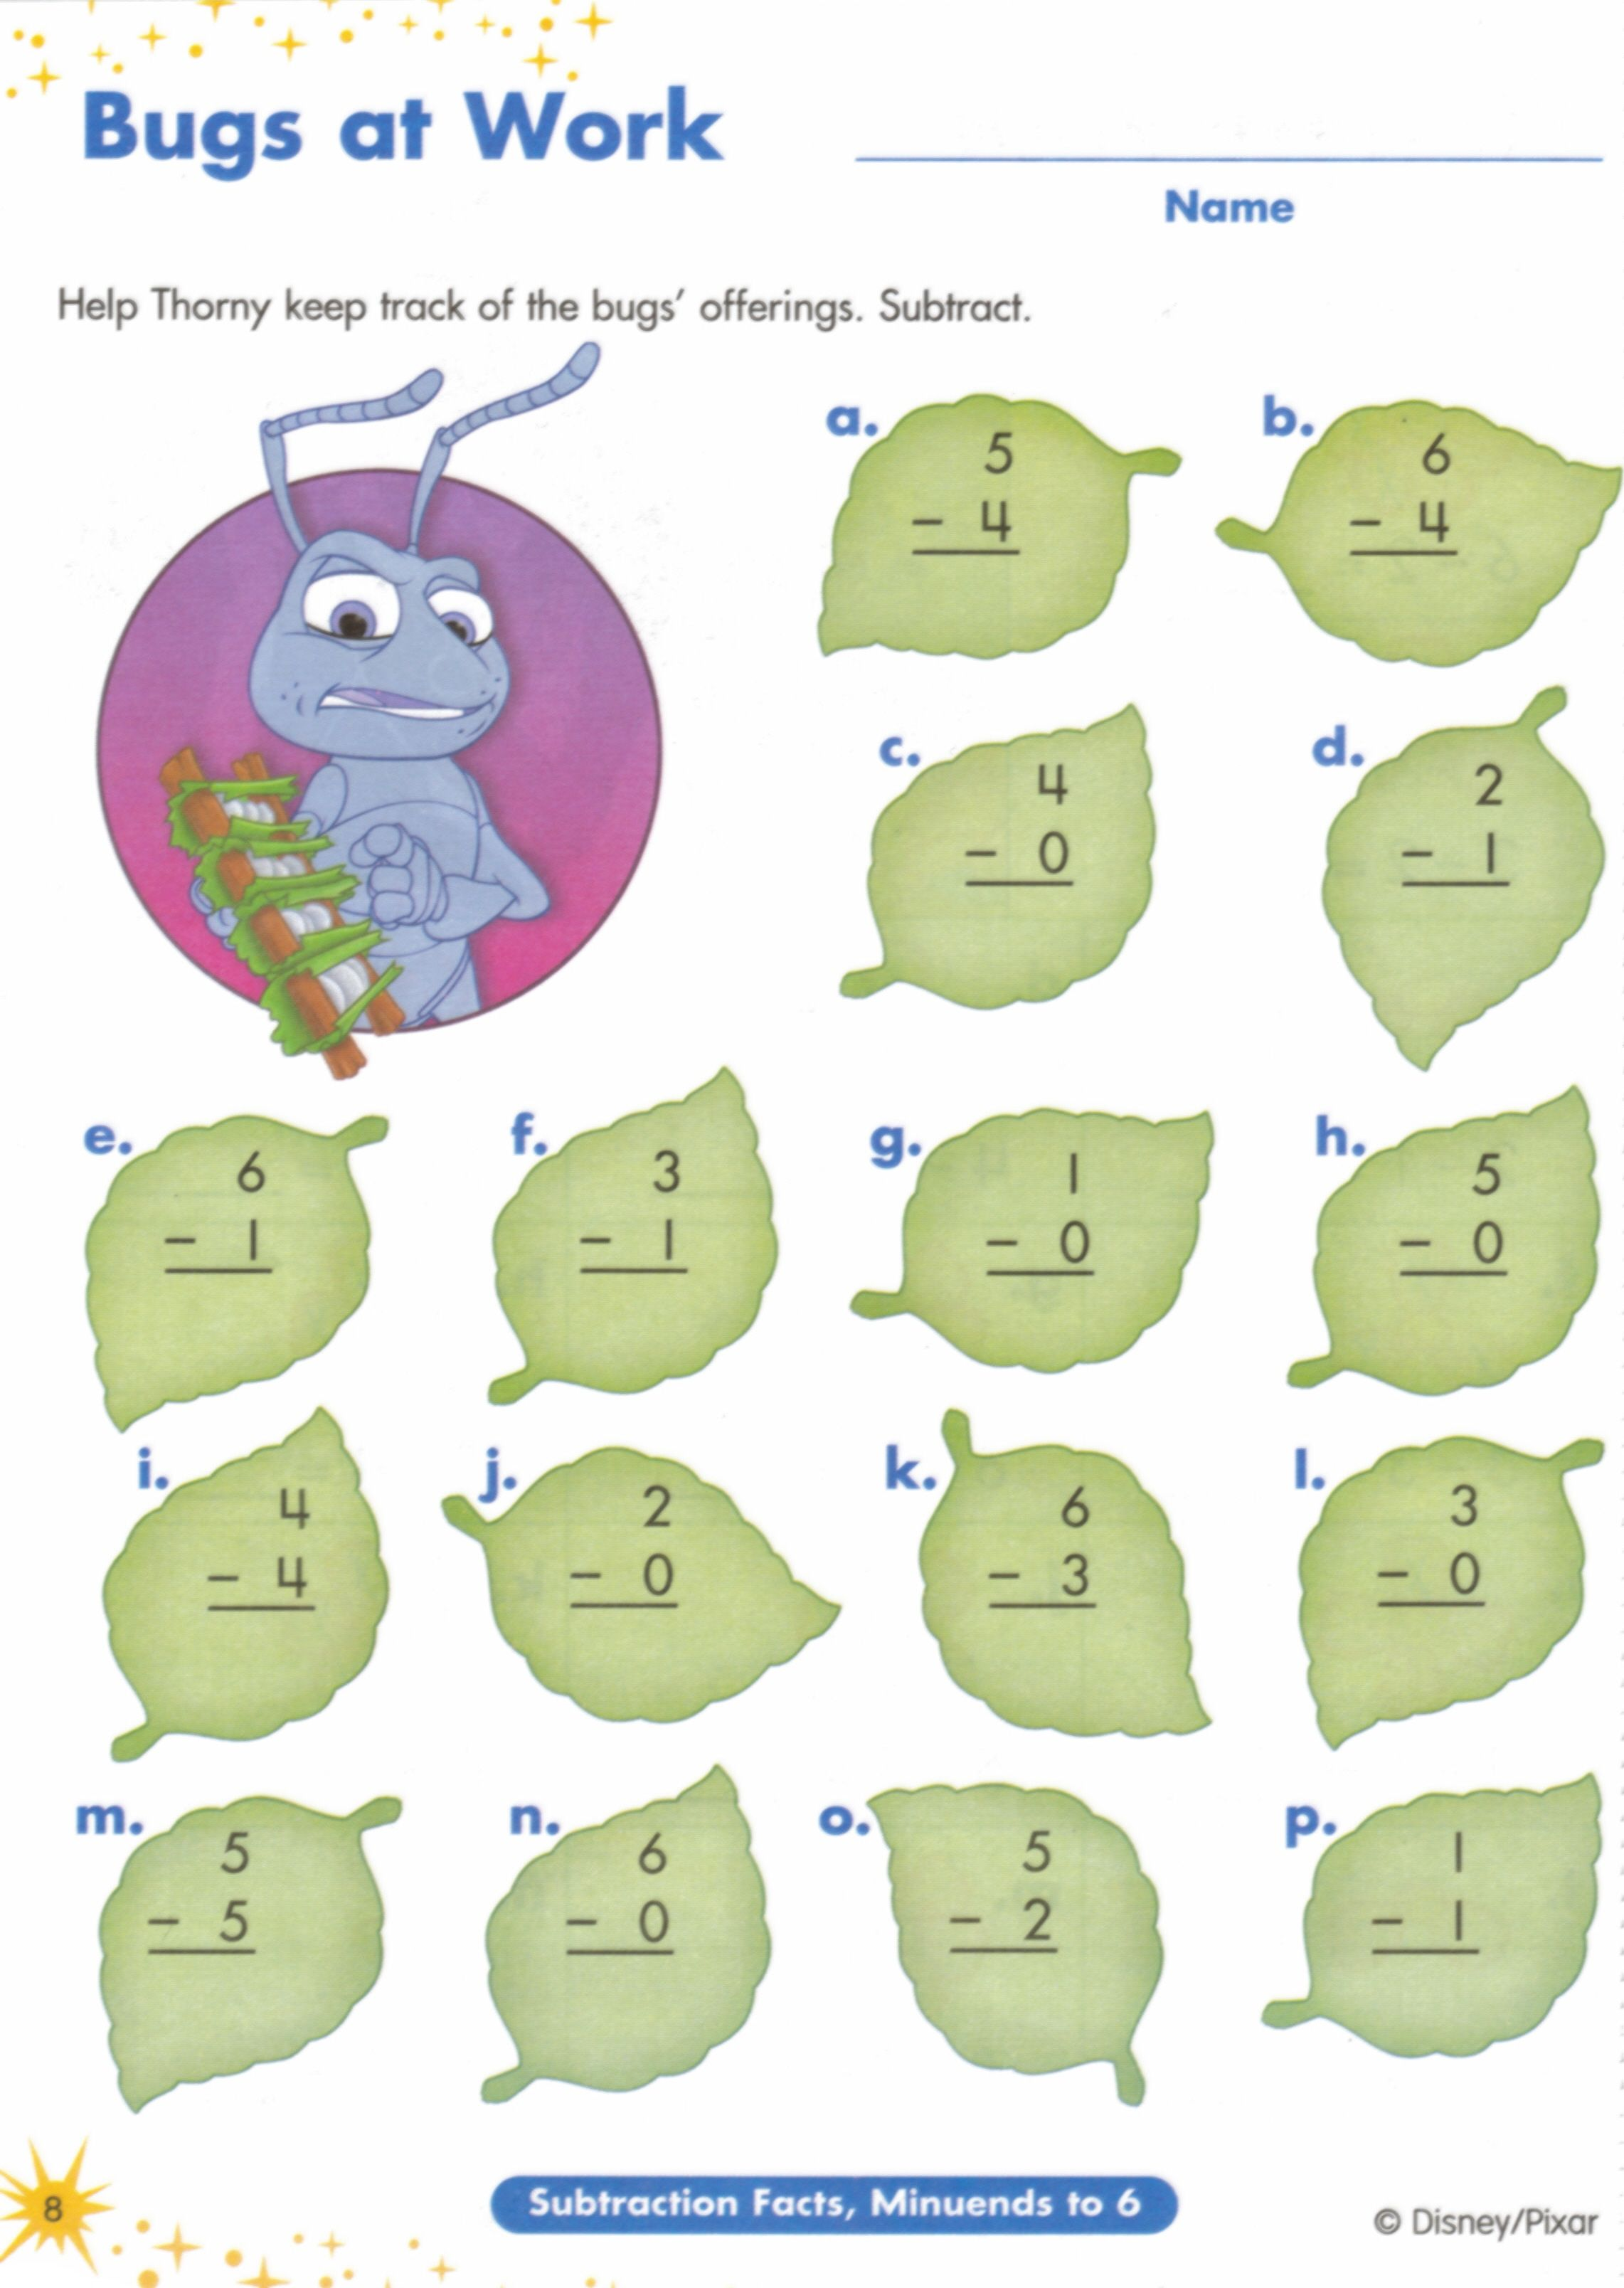 Proatmealus  Terrific  Images About Worksheets On Pinterest  Fun Facts For Kids  With Magnificent  Images About Worksheets On Pinterest  Fun Facts For Kids Earth Day Worksheets And Jungles With Endearing Two Digit Addition Worksheet Also Moles To Molecules Worksheet In Addition Jamestown Worksheets And R Controlled Vowels Worksheets Nd Grade As Well As Verbs Worksheet Nd Grade Additionally Food Cost Worksheet From Pinterestcom With Proatmealus  Magnificent  Images About Worksheets On Pinterest  Fun Facts For Kids  With Endearing  Images About Worksheets On Pinterest  Fun Facts For Kids Earth Day Worksheets And Jungles And Terrific Two Digit Addition Worksheet Also Moles To Molecules Worksheet In Addition Jamestown Worksheets From Pinterestcom